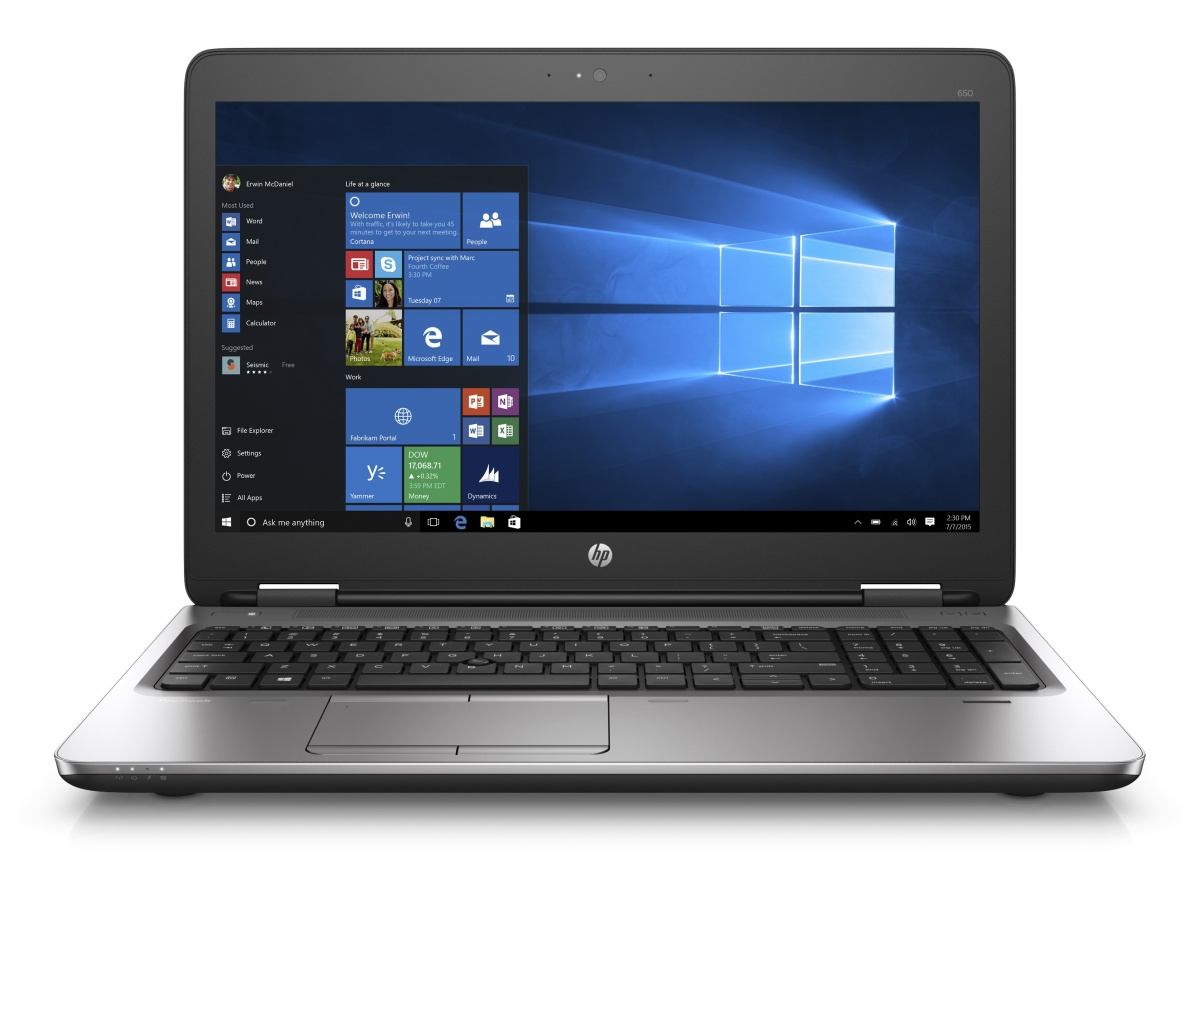 "HP ProBook 650 G2 15.6"" HD/i5-6200U/4GB/500GB/DVD/VGA/DP/SP/RJ45/WIFI/BT/MCR/FPR/1RServis/7+10P"